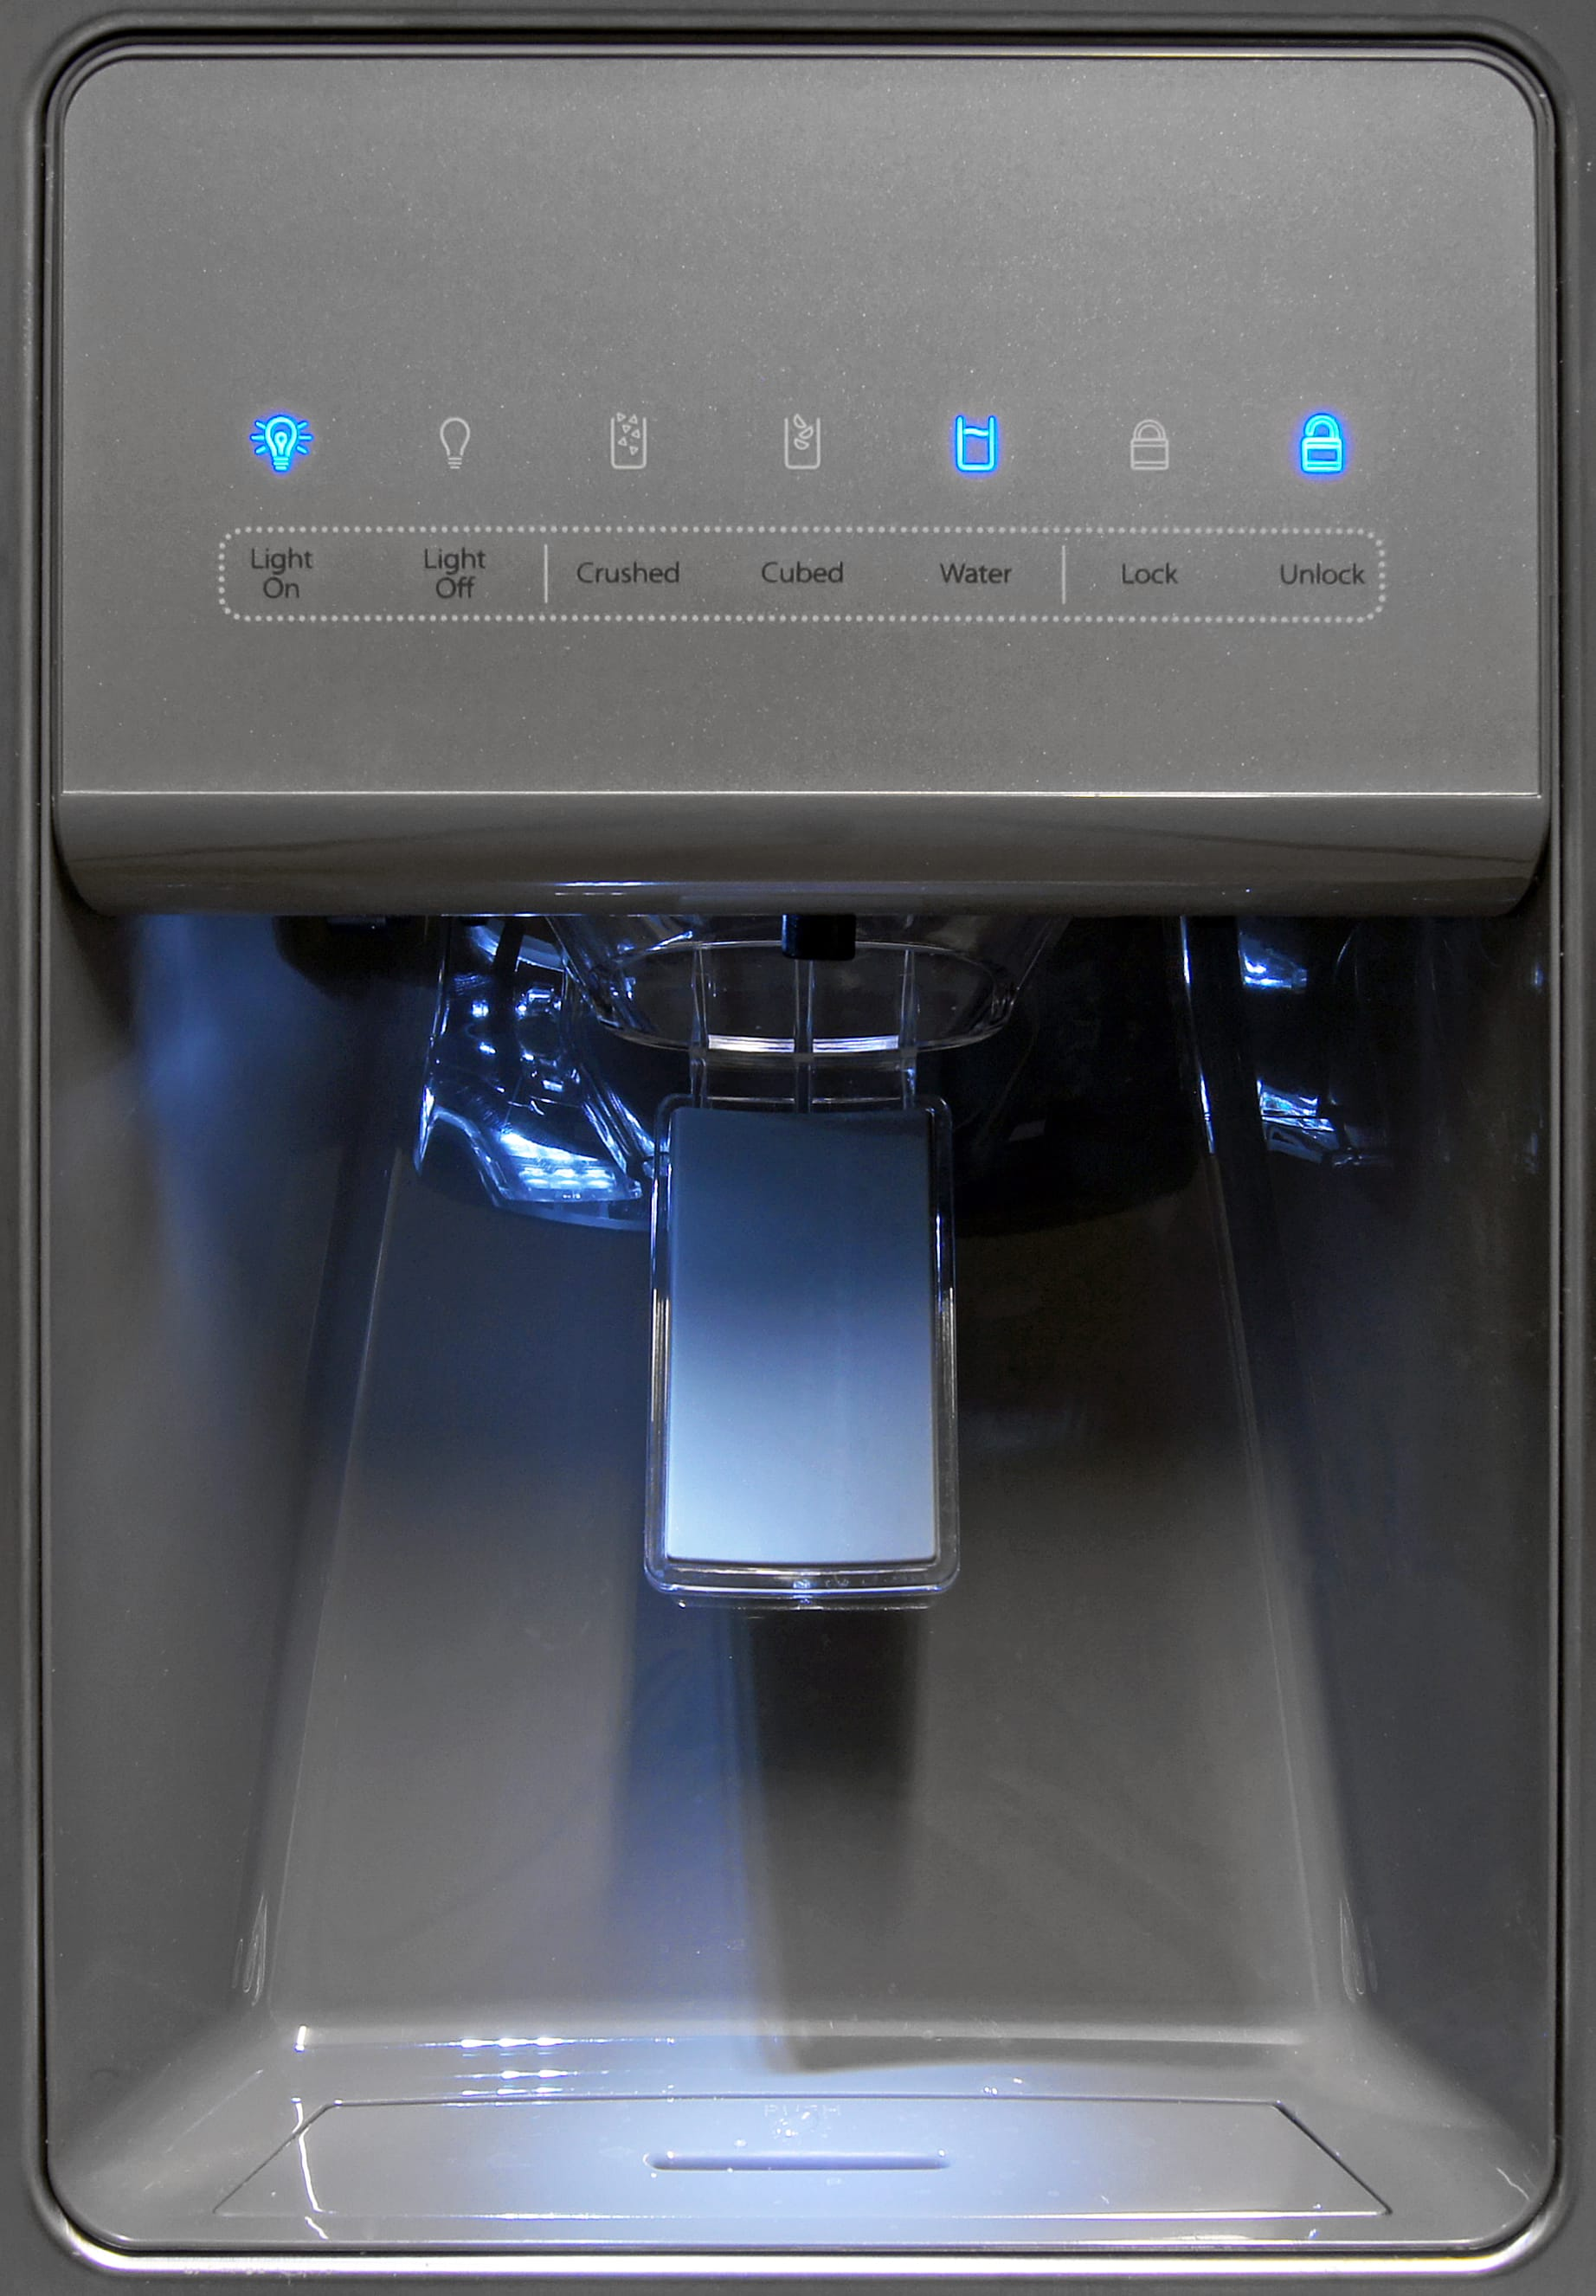 The Whirlpool WRS325FDAM's dispenser controls don't use an actual touch screen, just a plastic overlay on top of manual switches.